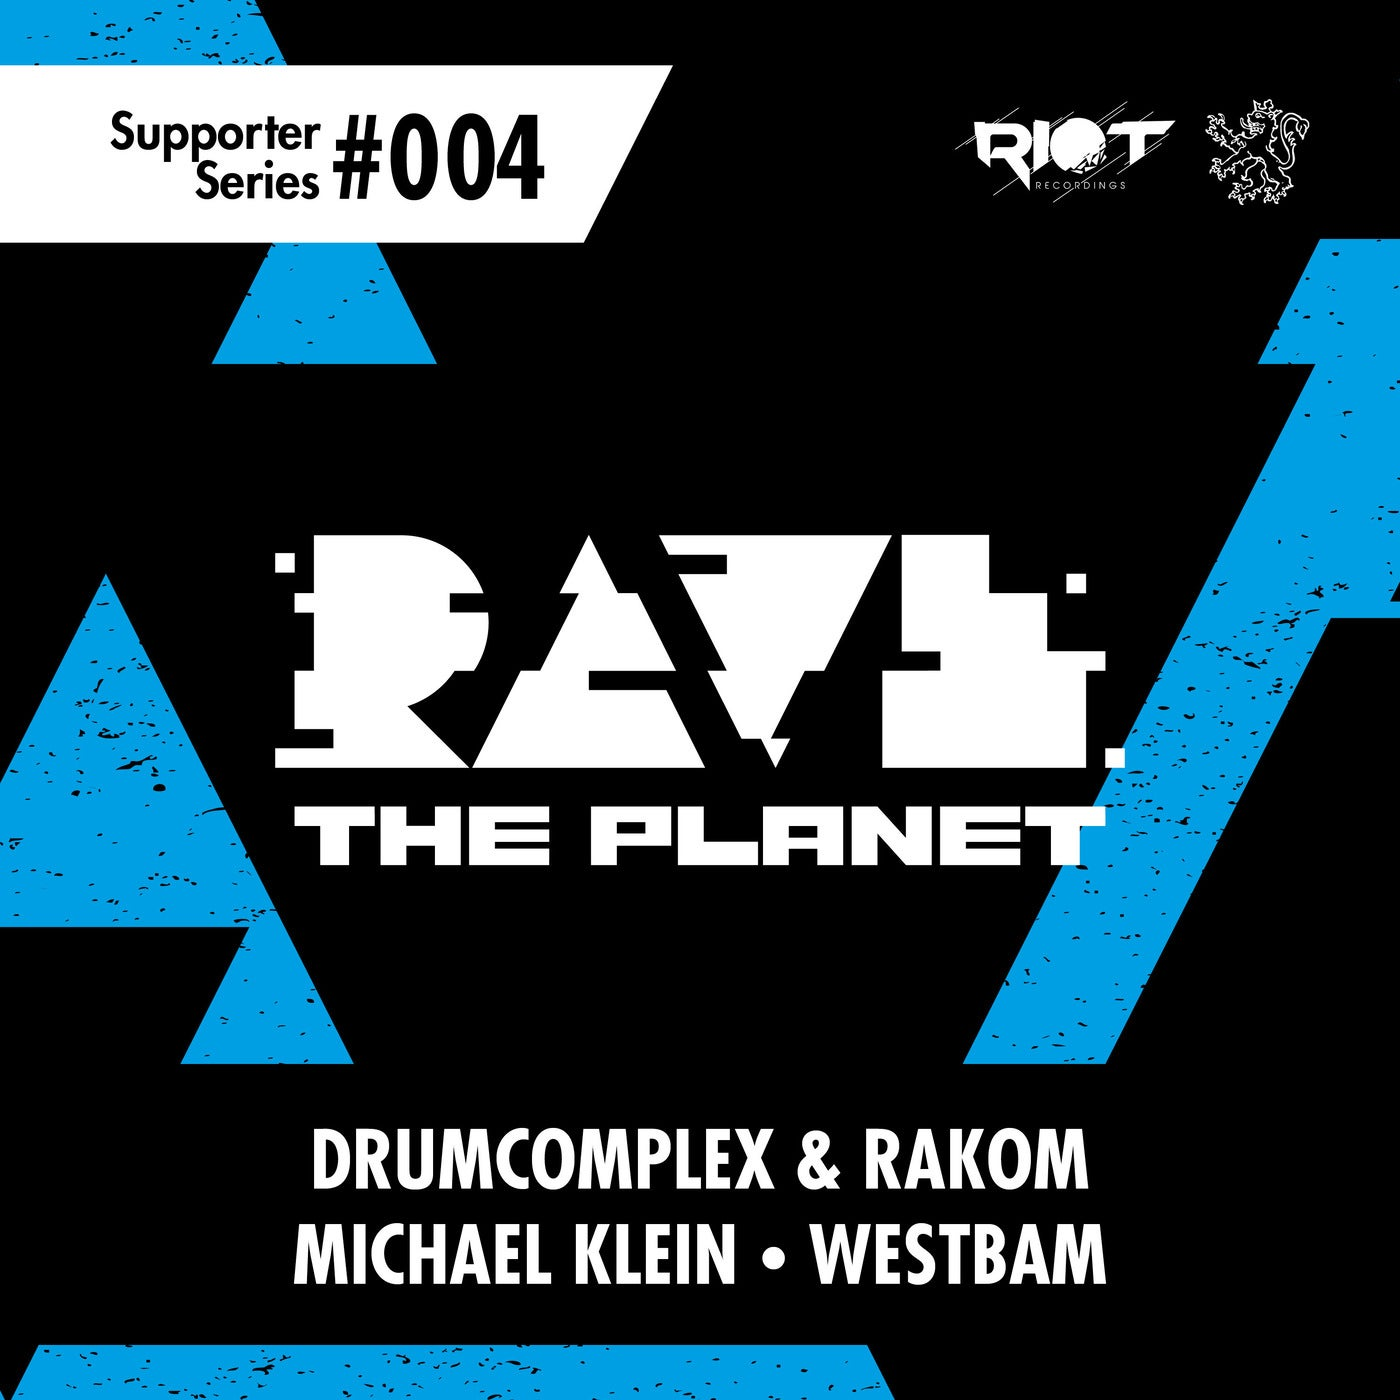 Download Rave the Planet: Supporter Series, Vol. 004 on Electrobuzz